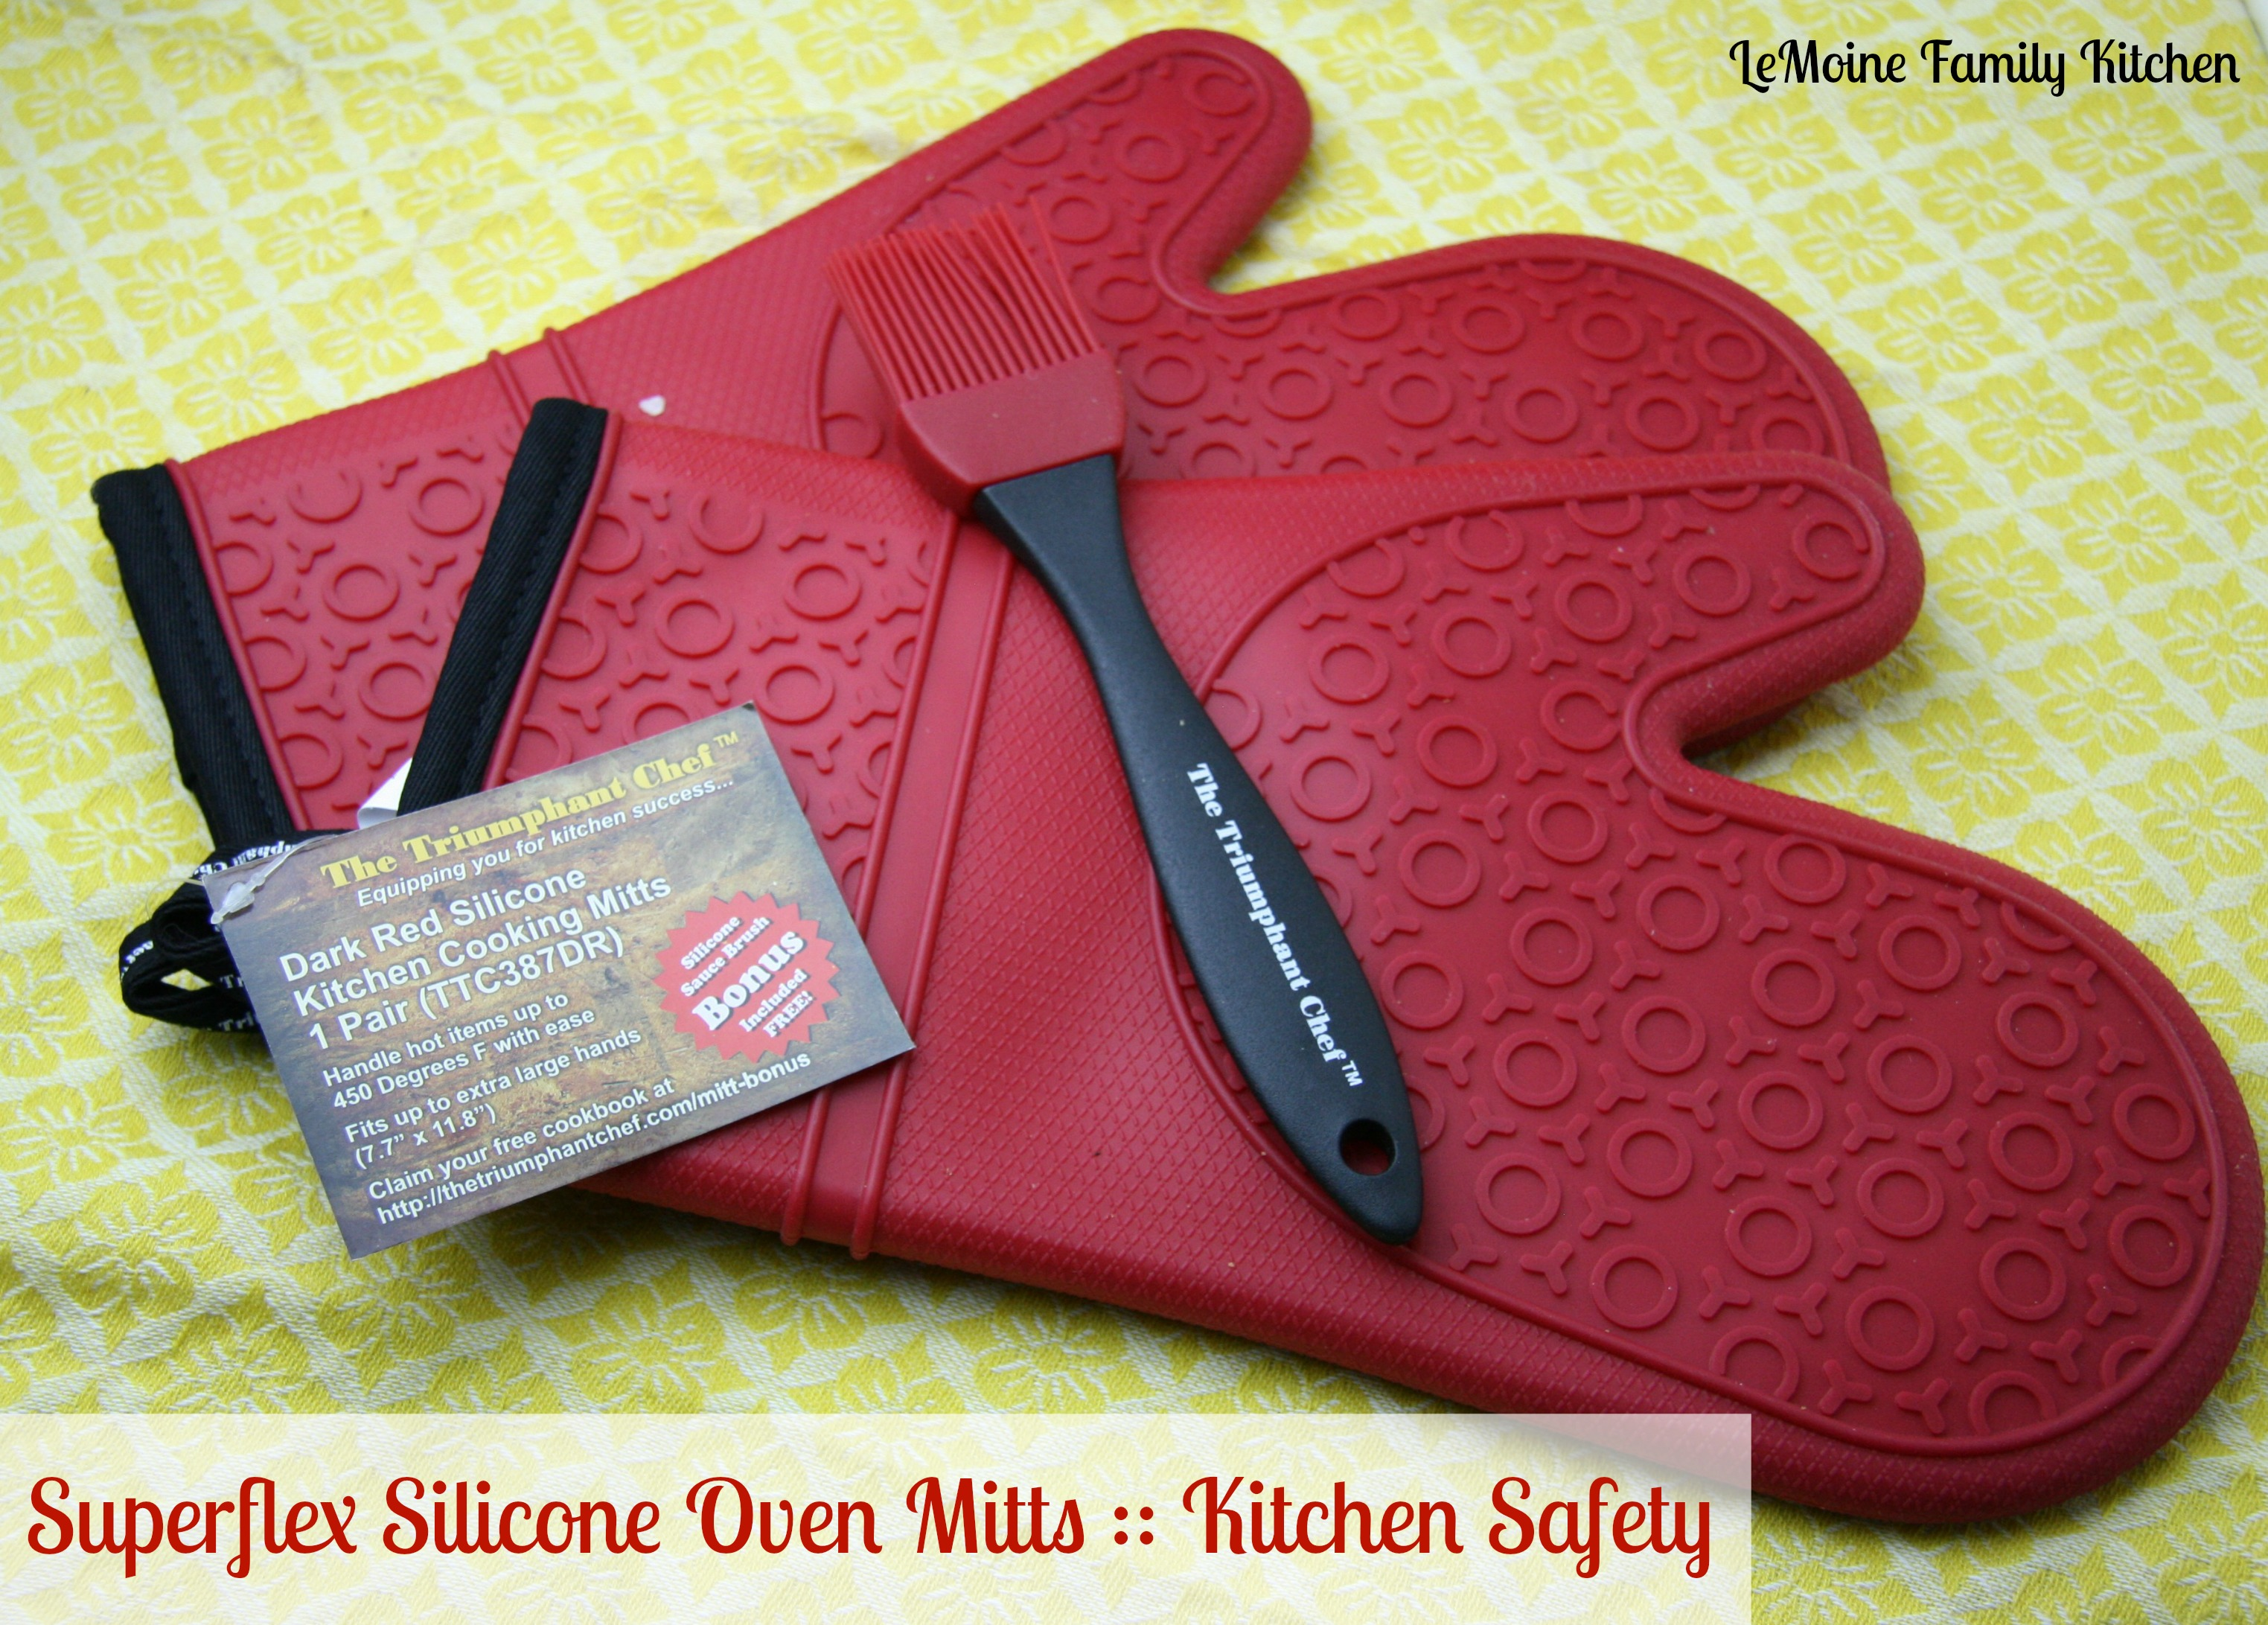 Super Flex Silicone Oven Mitts :: Kitchen Safety